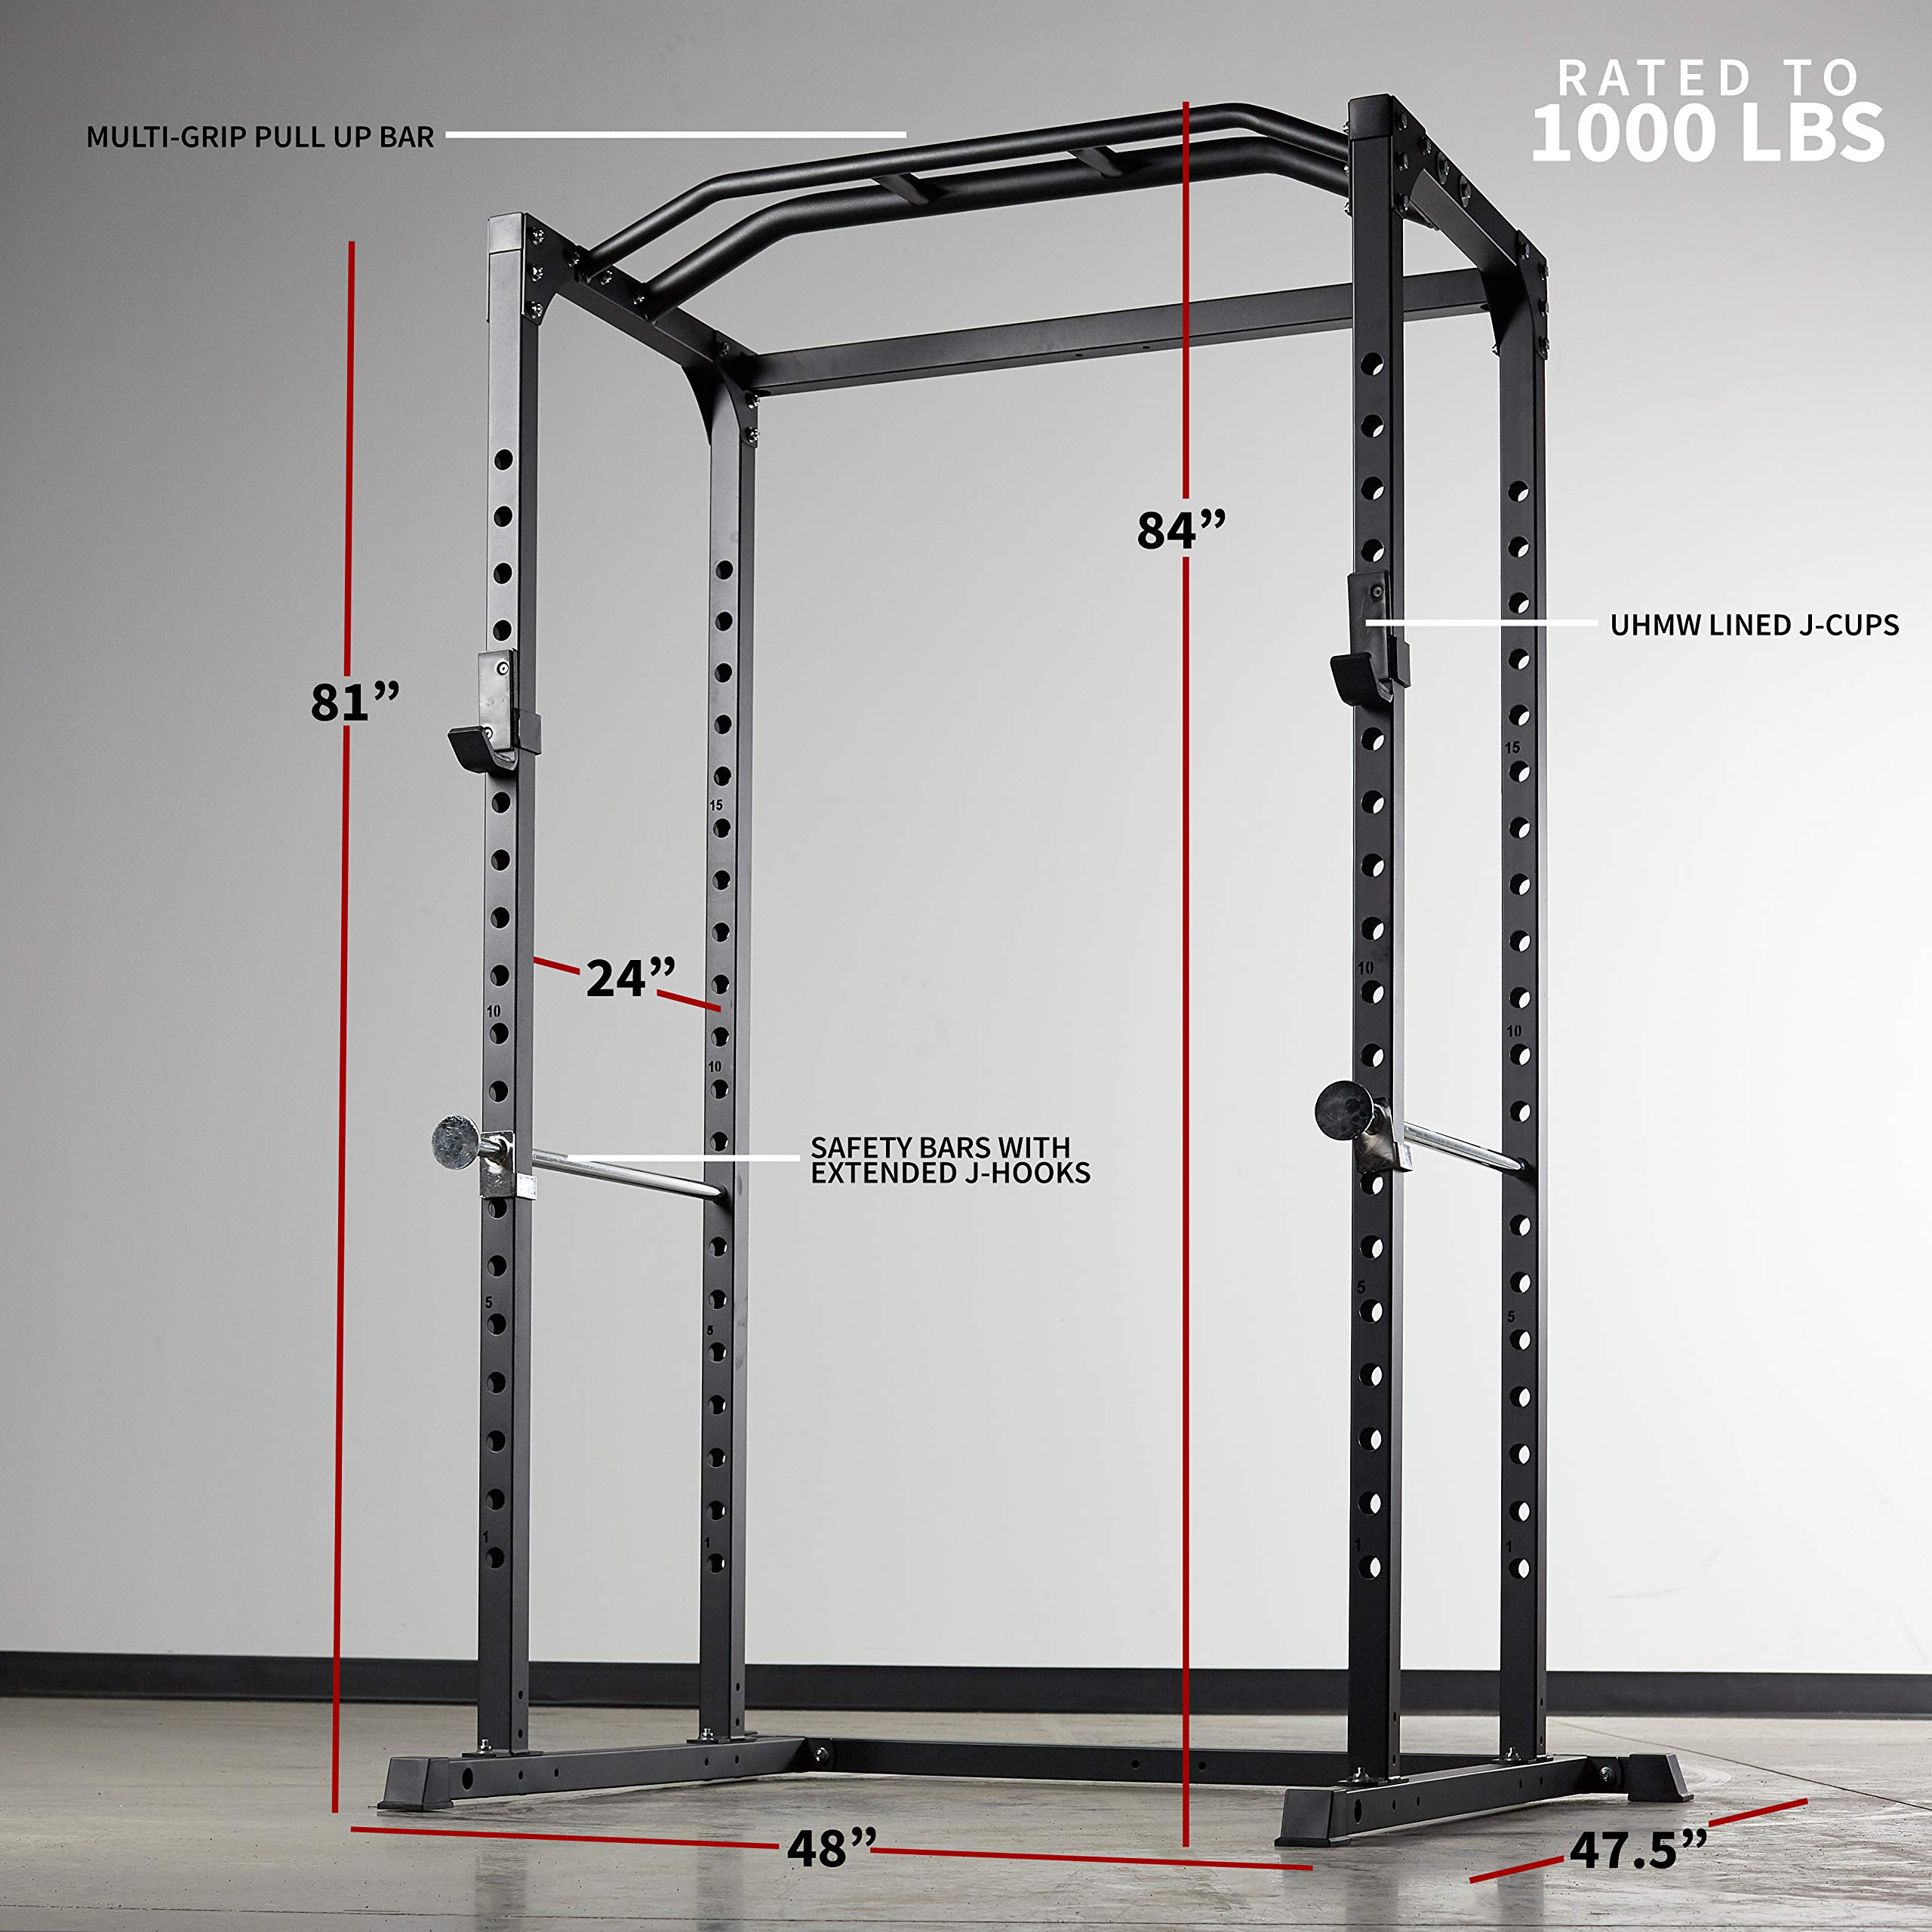 Rep PR-1100 Power Rack - 1,000 lbs Rated Lifting Cage for Weight Training by Rep Fitness (Image #2)